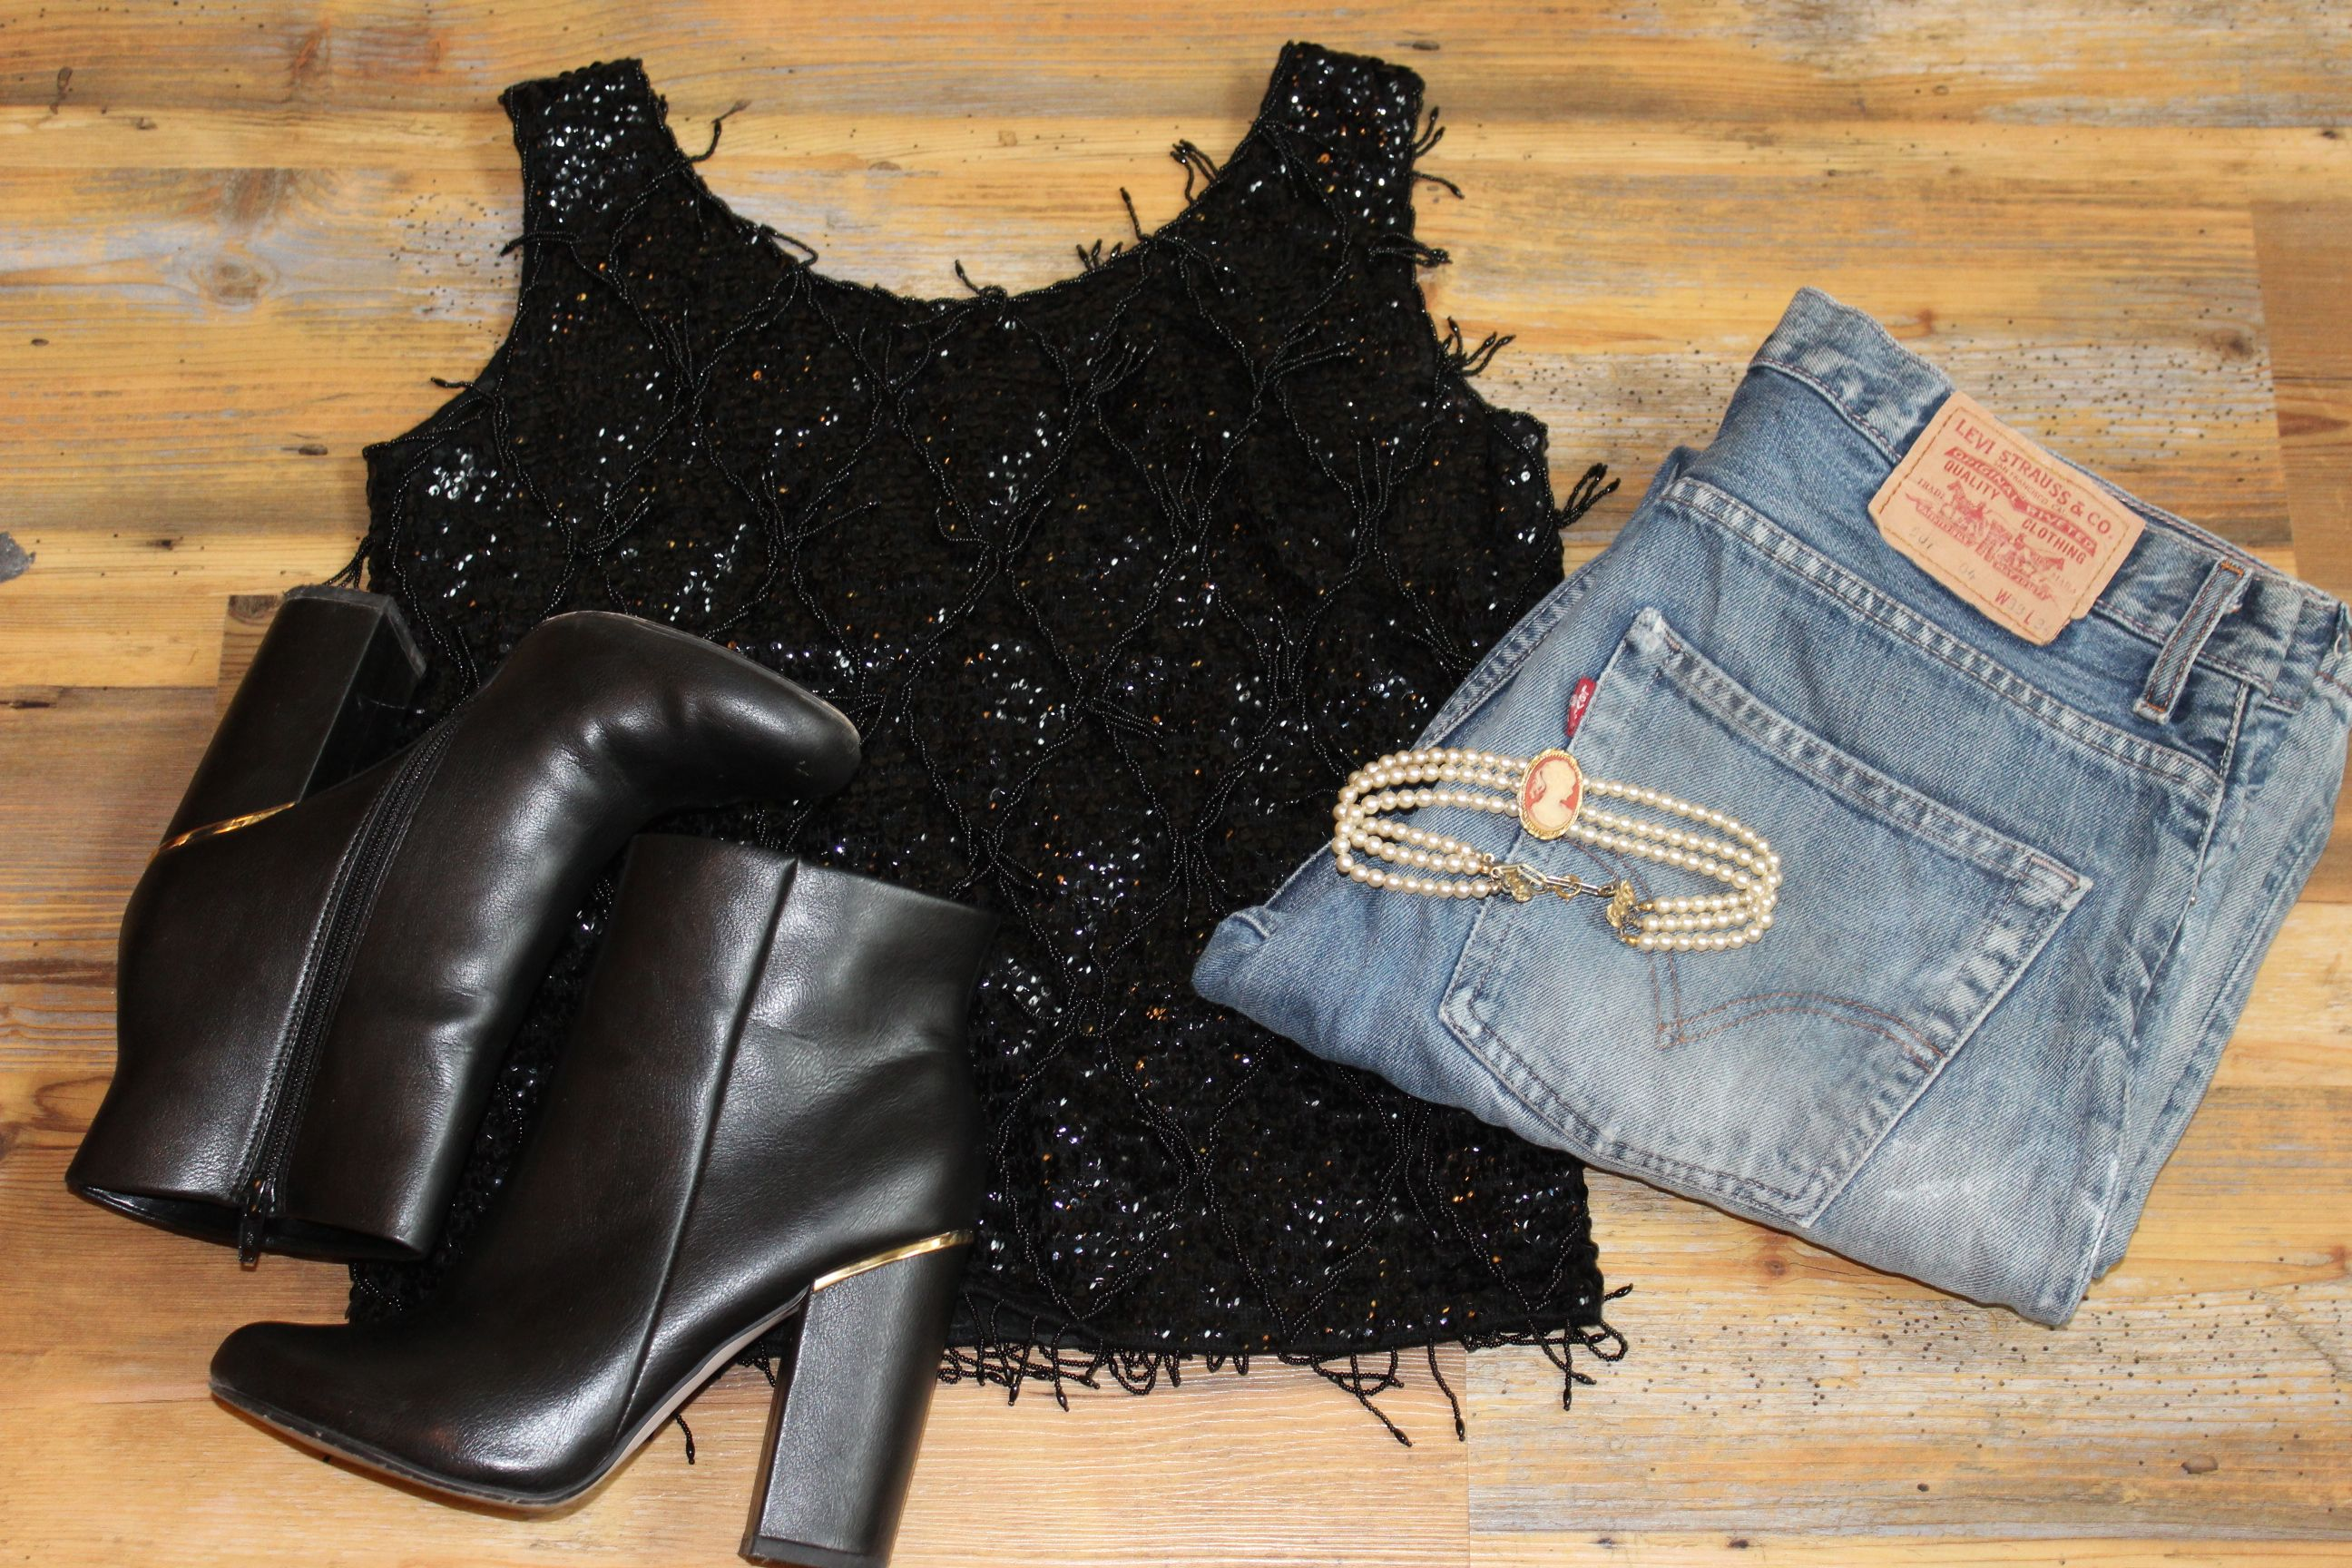 Sparkles and skinny jeans ready for the weekend in Cardiff Emporium #weekendvibes #fridayfeeling